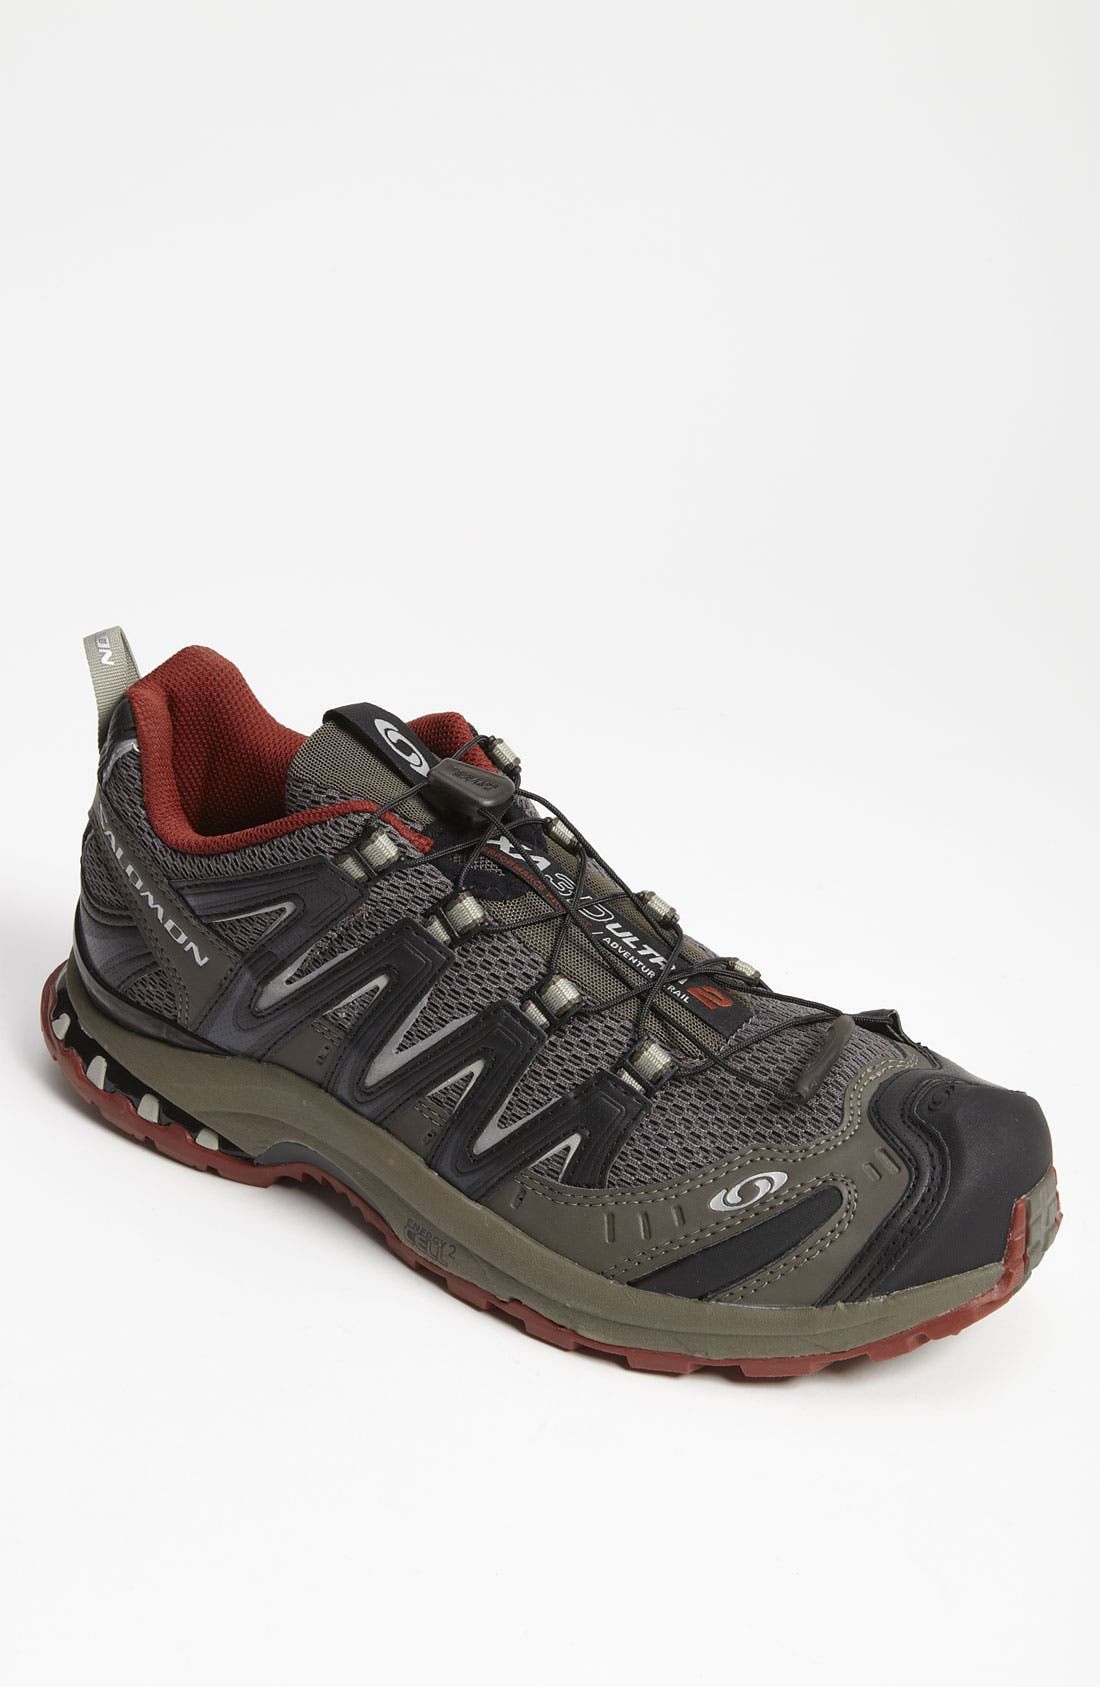 Alternate Image 1 Selected - Salomon 'XA Pro 3D' Running Shoe (Men)